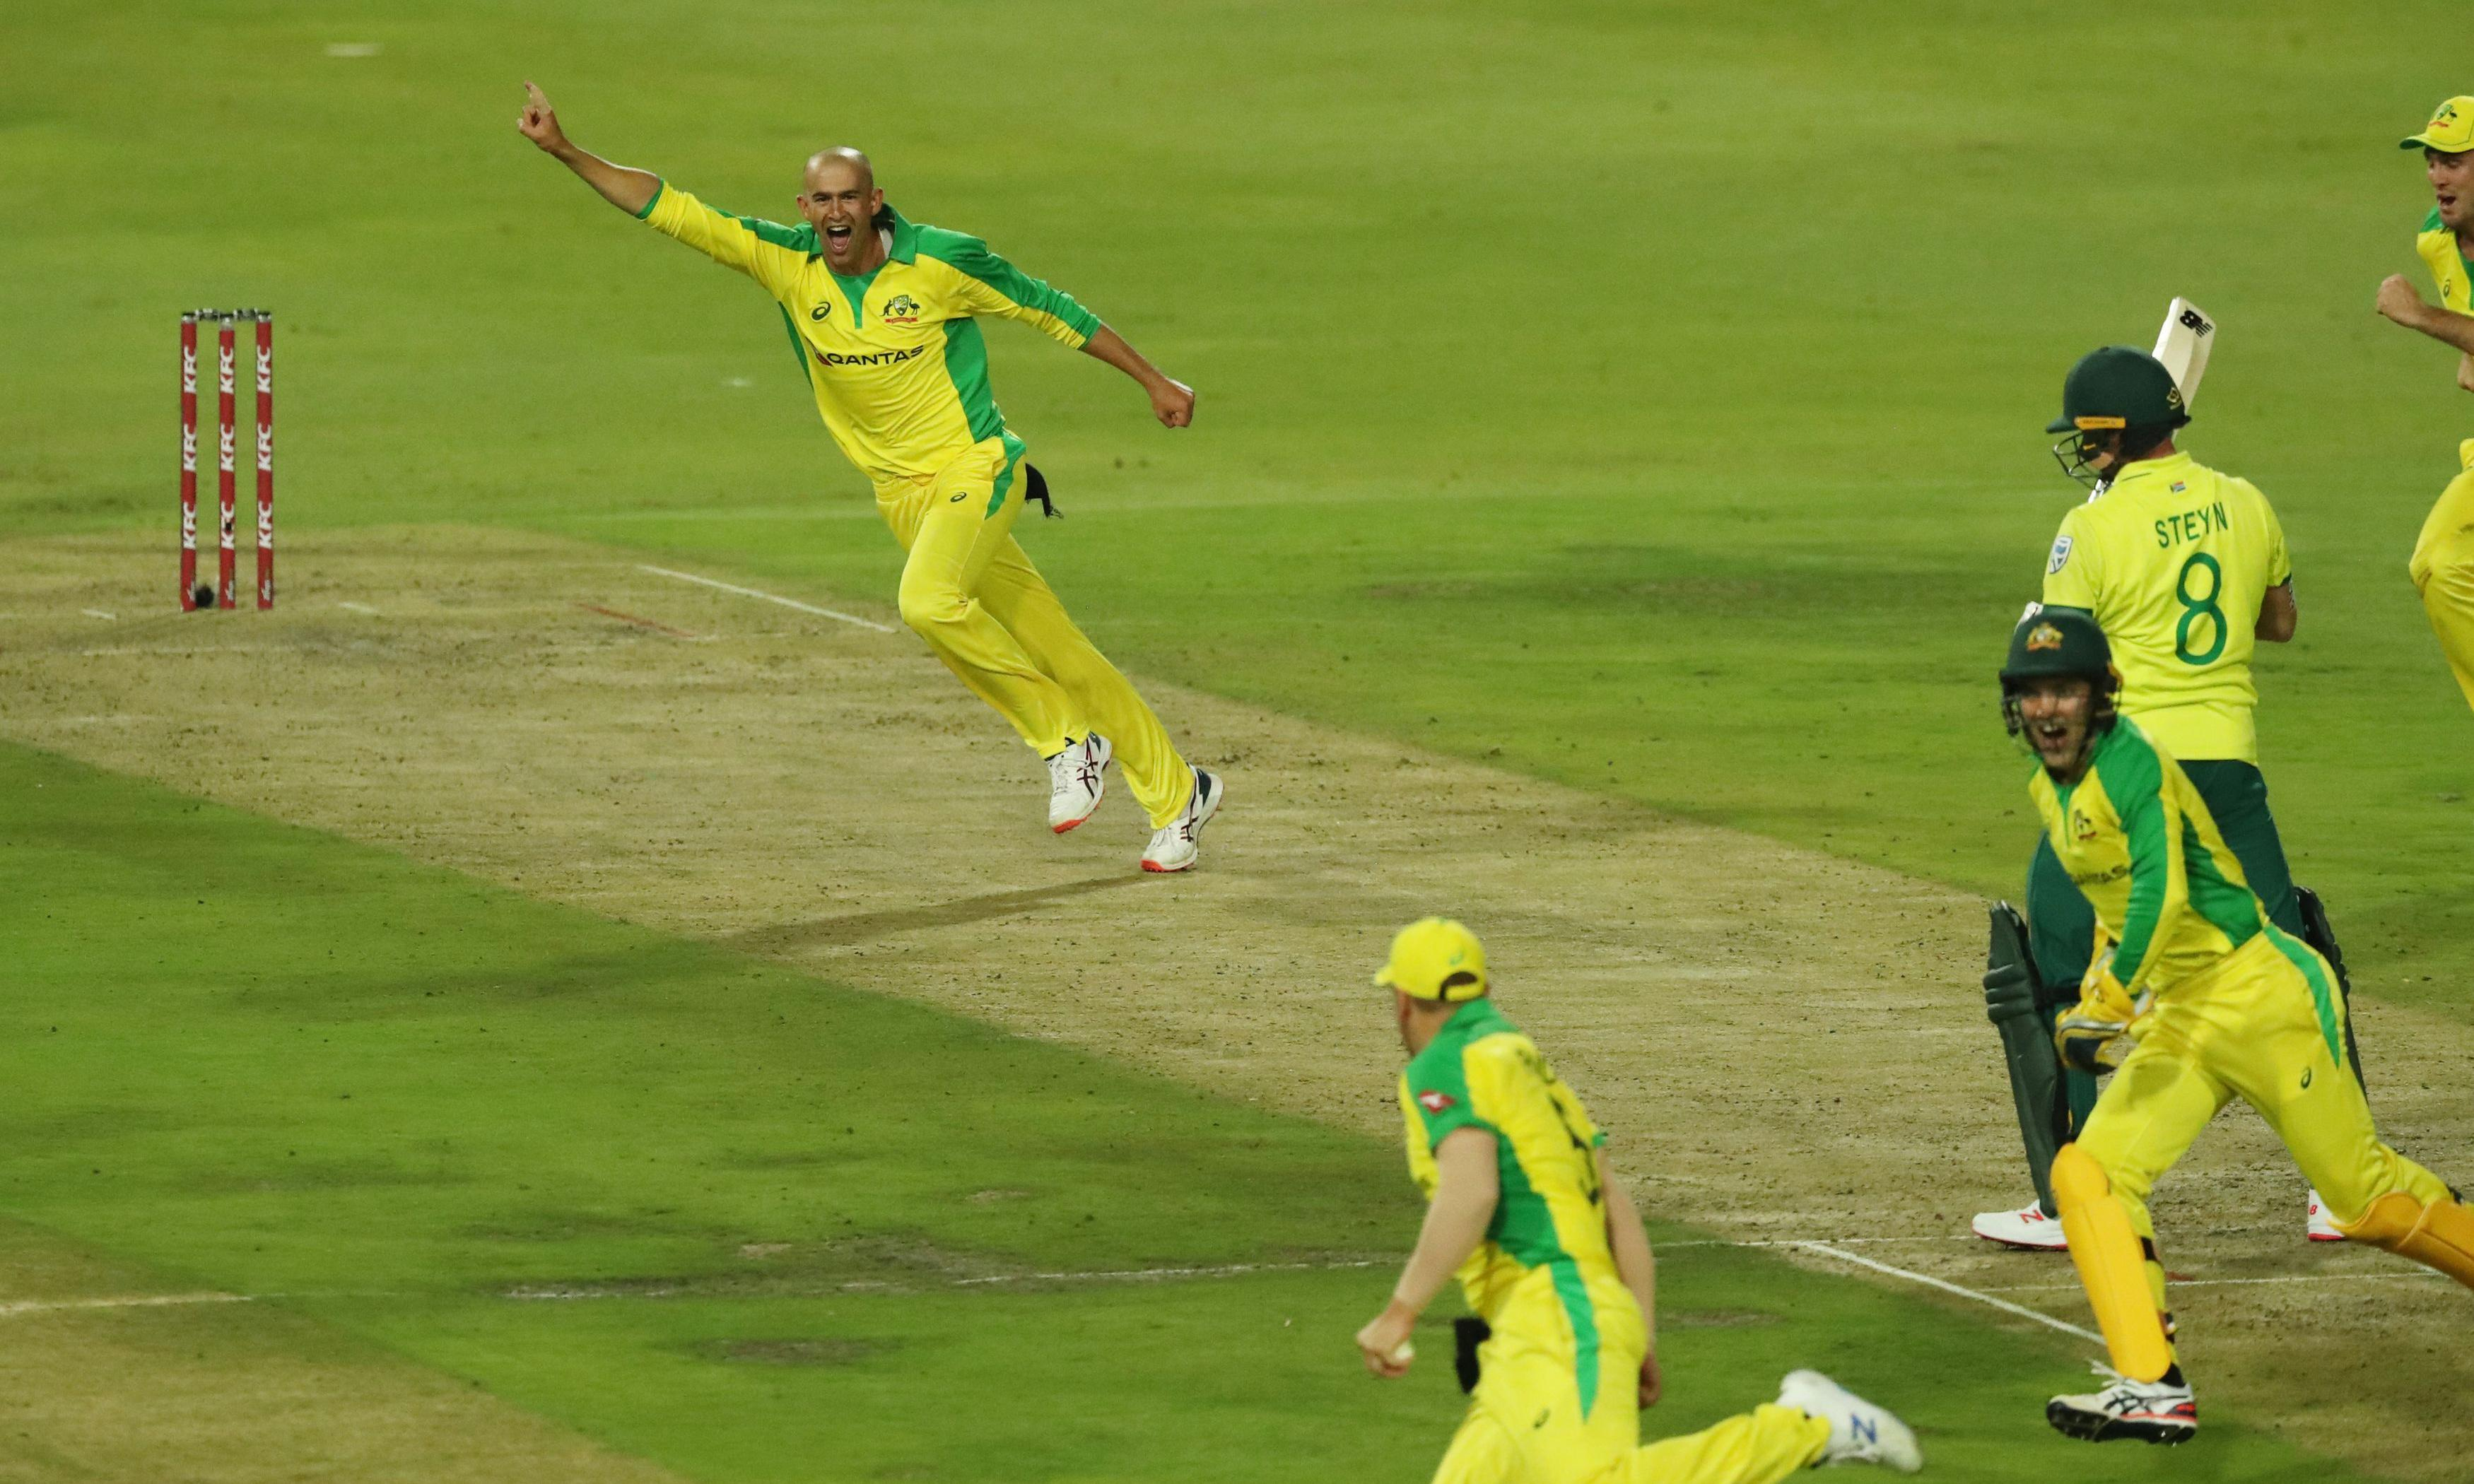 Ashton Agar's hat-trick inspires Australia to South Africa T20 romp